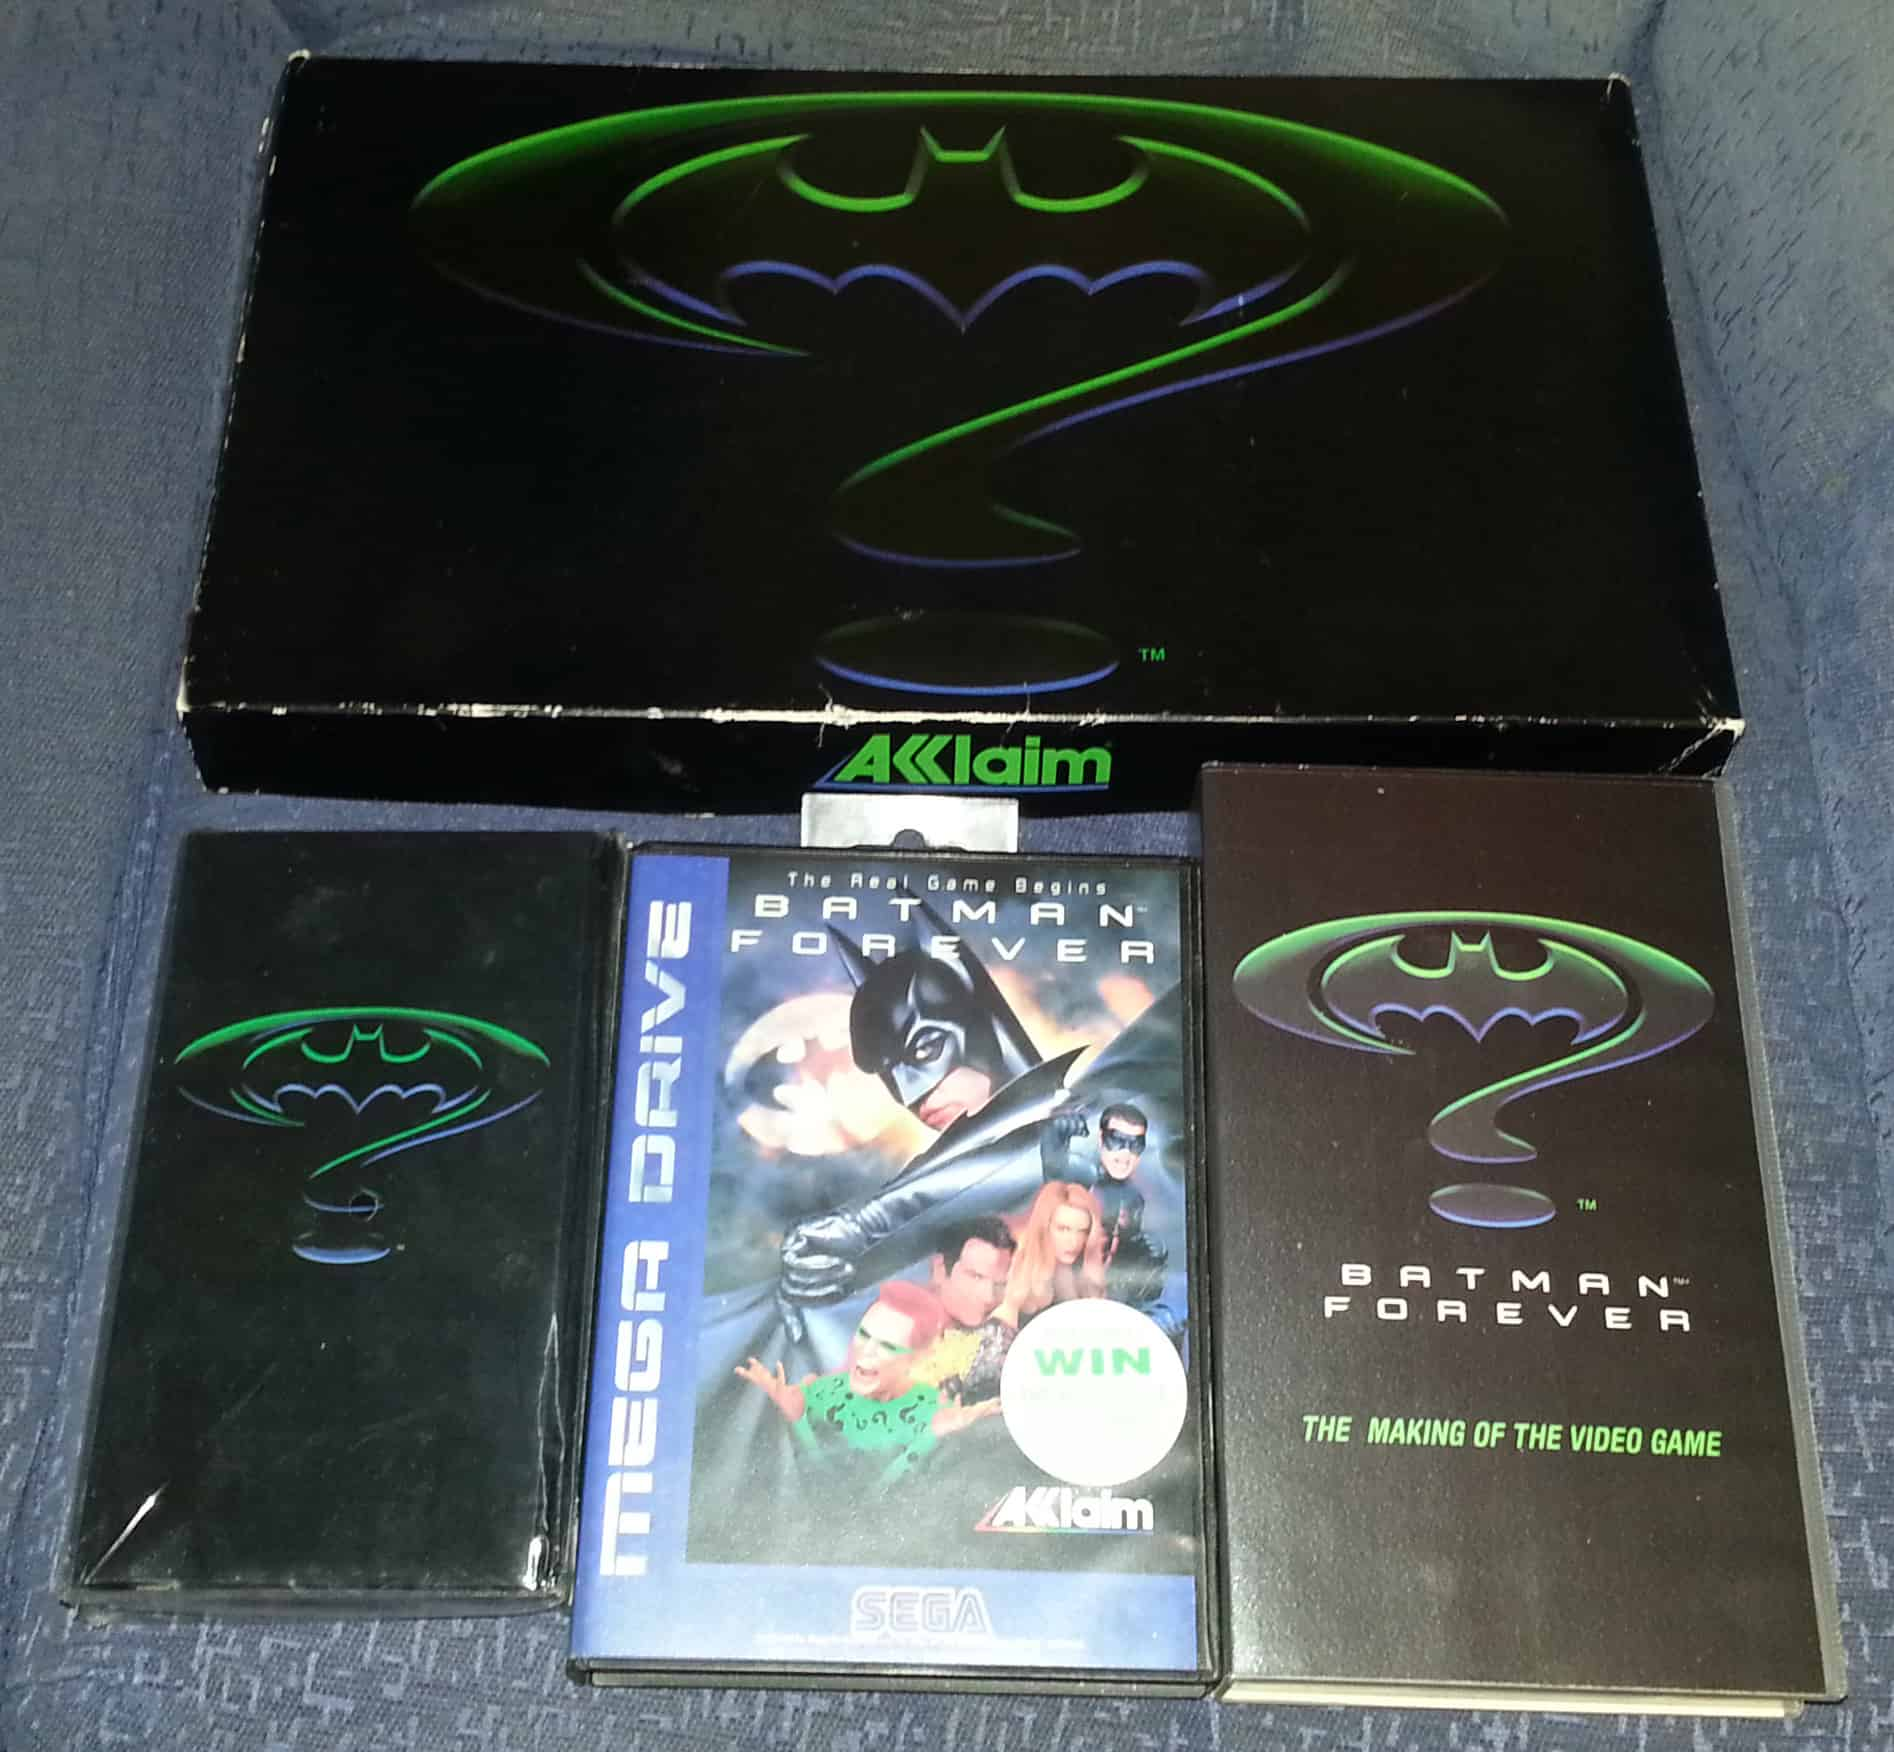 Batman Forever Woolworths Box Set – valuable video game